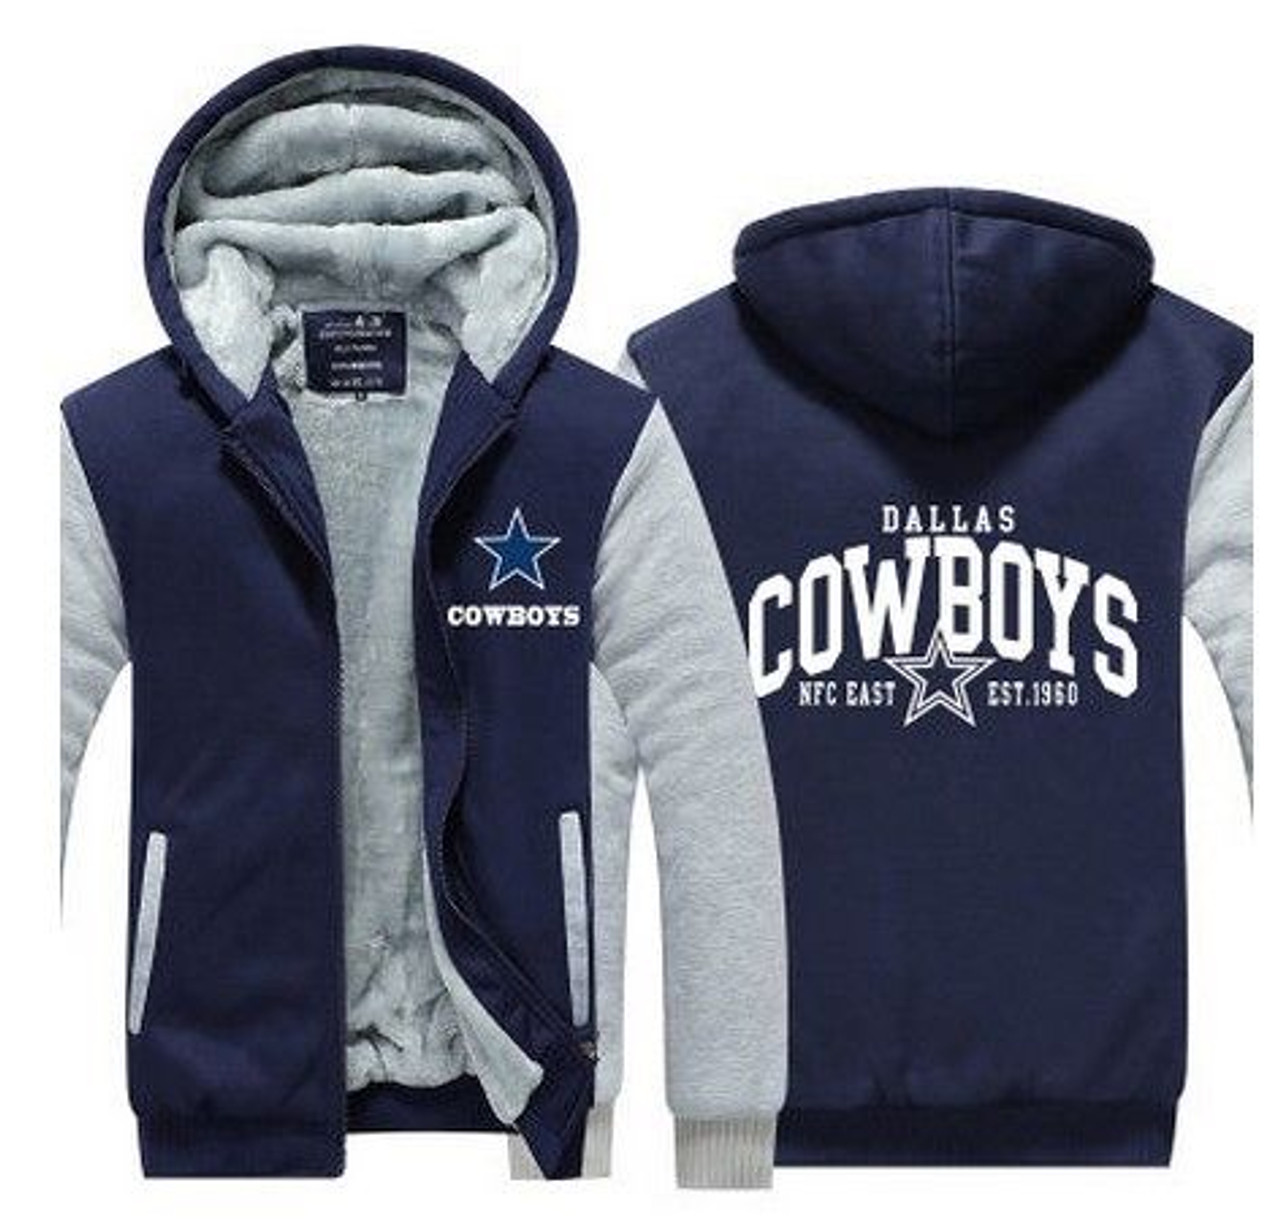 **(LIMITED-EDITION>OFFICIAL-N.F.L. DALLAS-COWBOYS/NEW-TWO-TONE-STYLE,FLEECE-LINED-TEAM-JACKETS/3-D-CUSTOM-DETAILED-GRAPHIC-PRINTED-DOUBLE-SIDED-LOGOS/OFFICIAL-TEAM-COLOR-POCKETED-ZIP-UP,WARM-PREMIUM-FLEECE-JACKETS)**